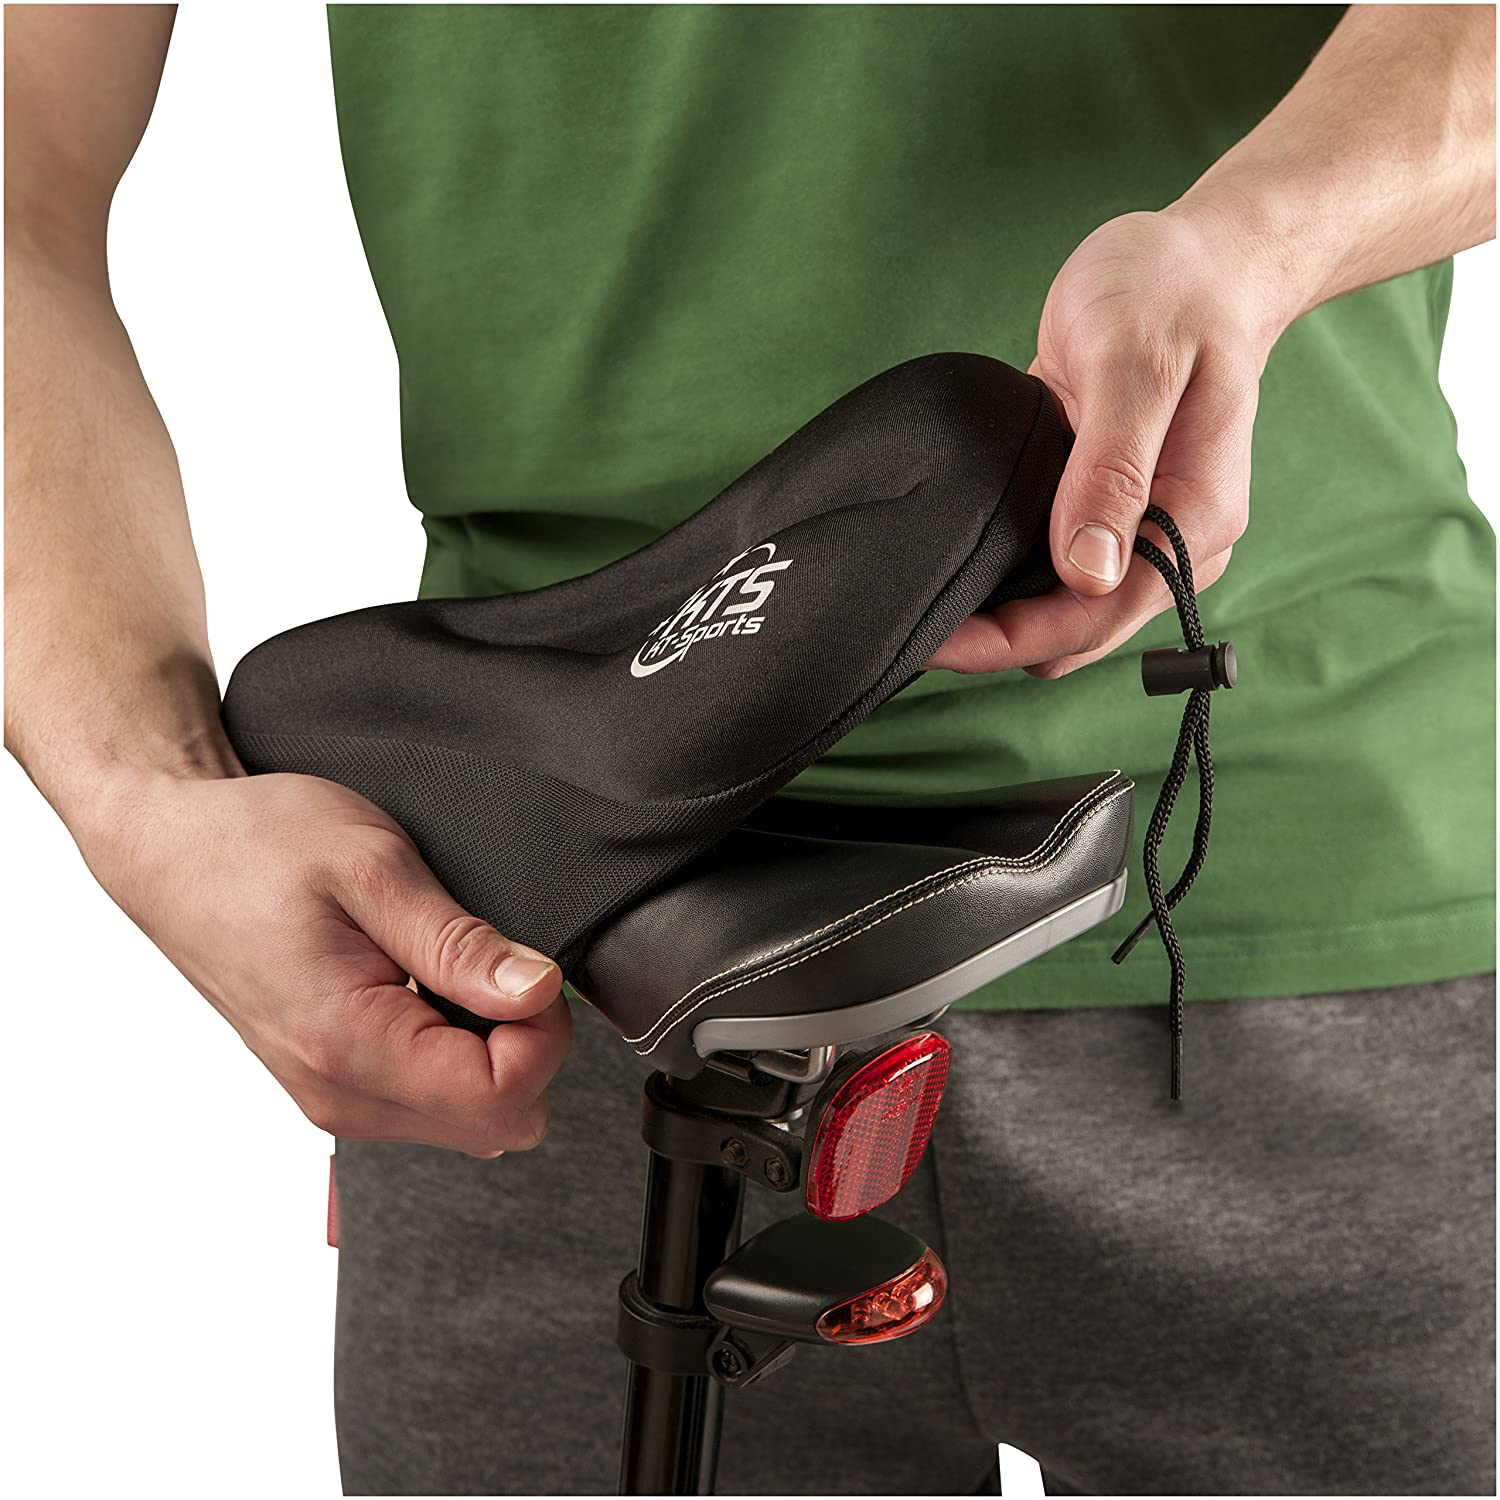 Kt Sports Gel Bike Seat Cover Sports Outdoors